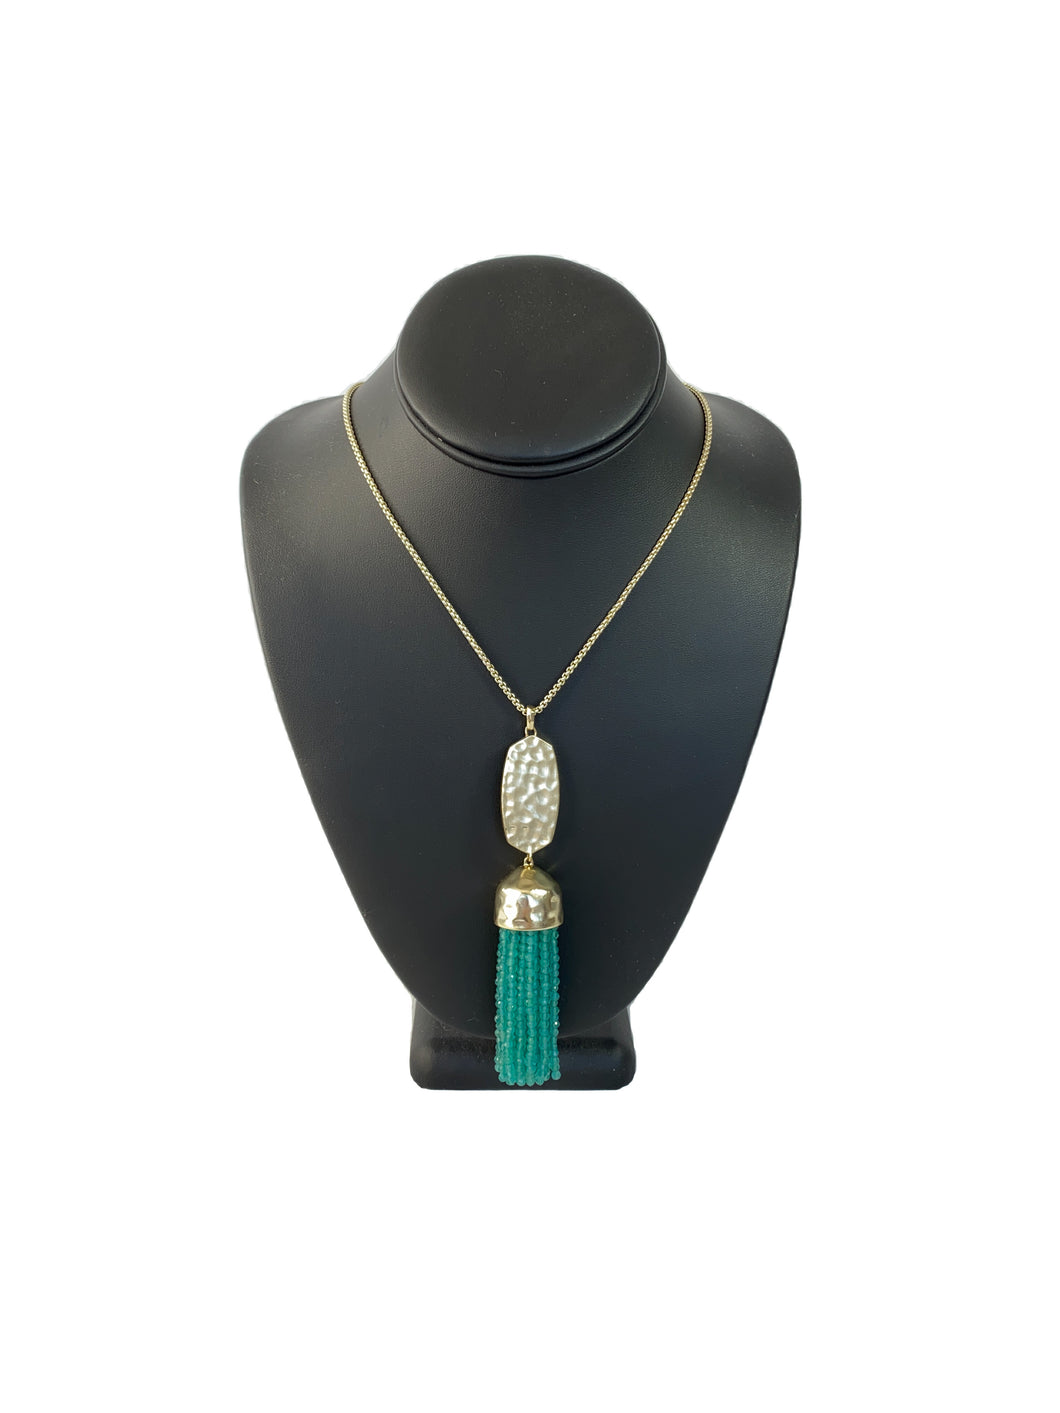 Kendra Scott Eva gold and teal tassel lariat necklace